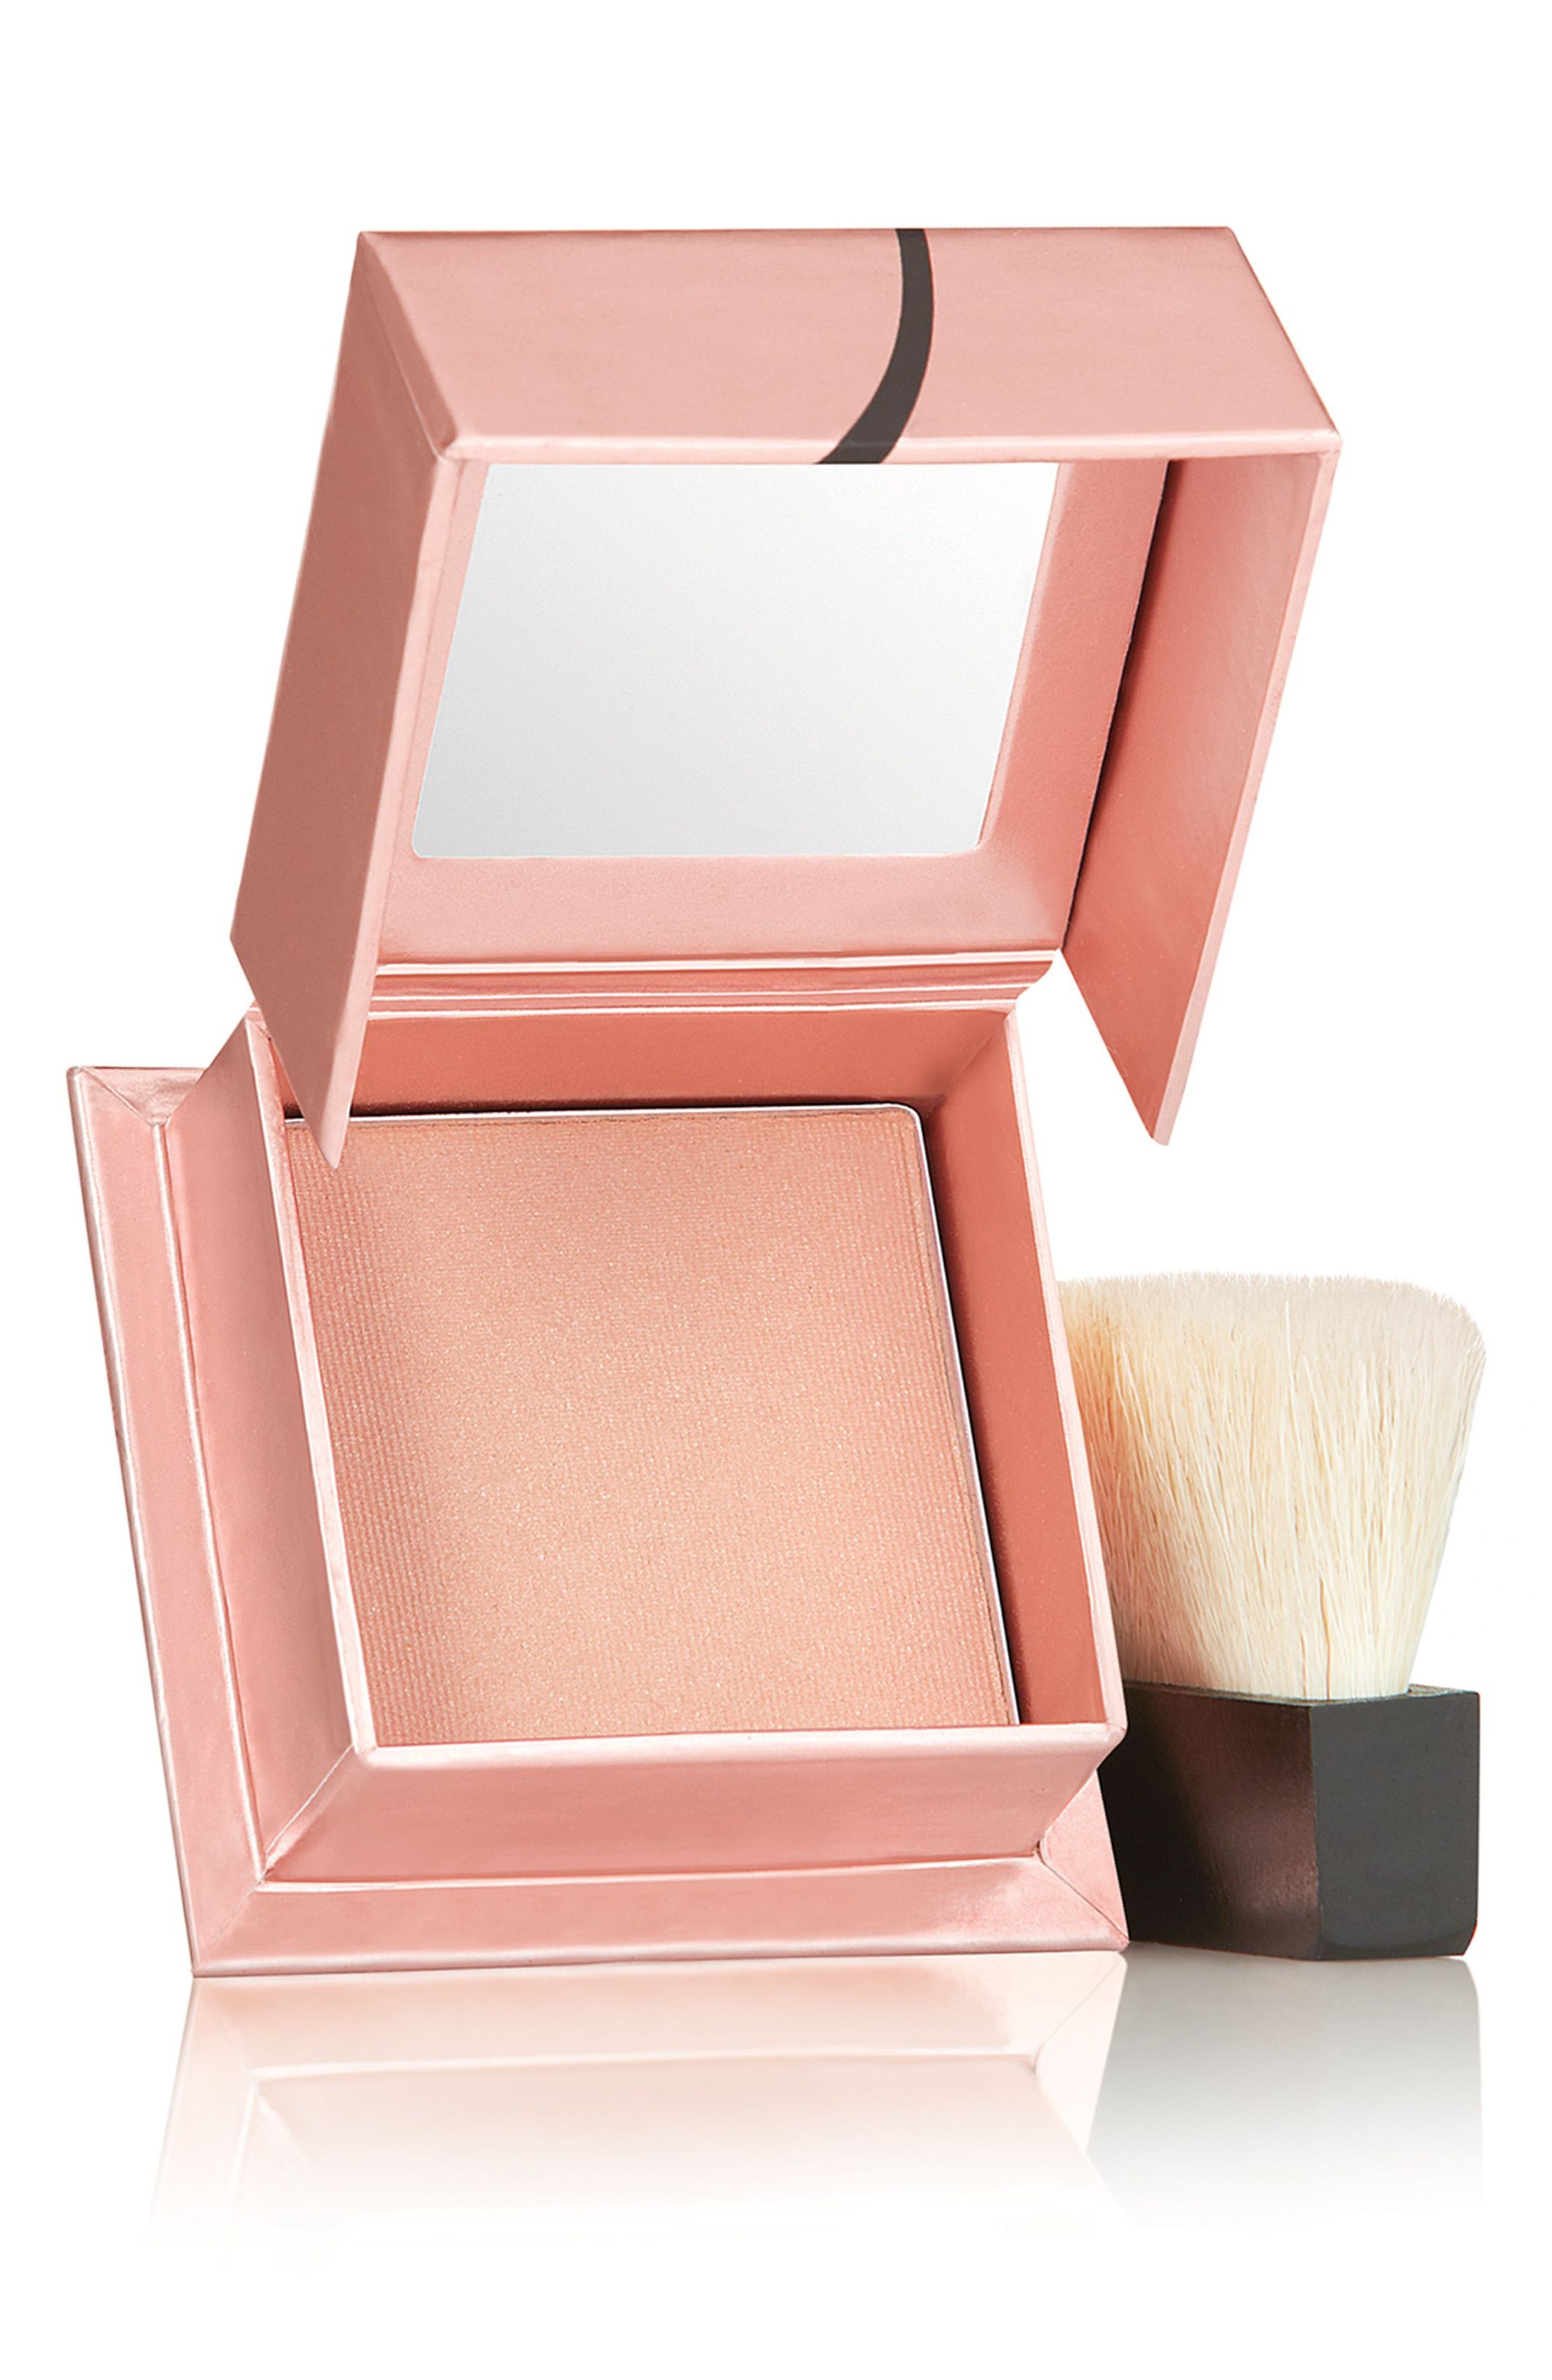 Benefit Dandelion Twinkle Powder Highlighter,                             Main thumbnail 1, color,                             NUDE PINK